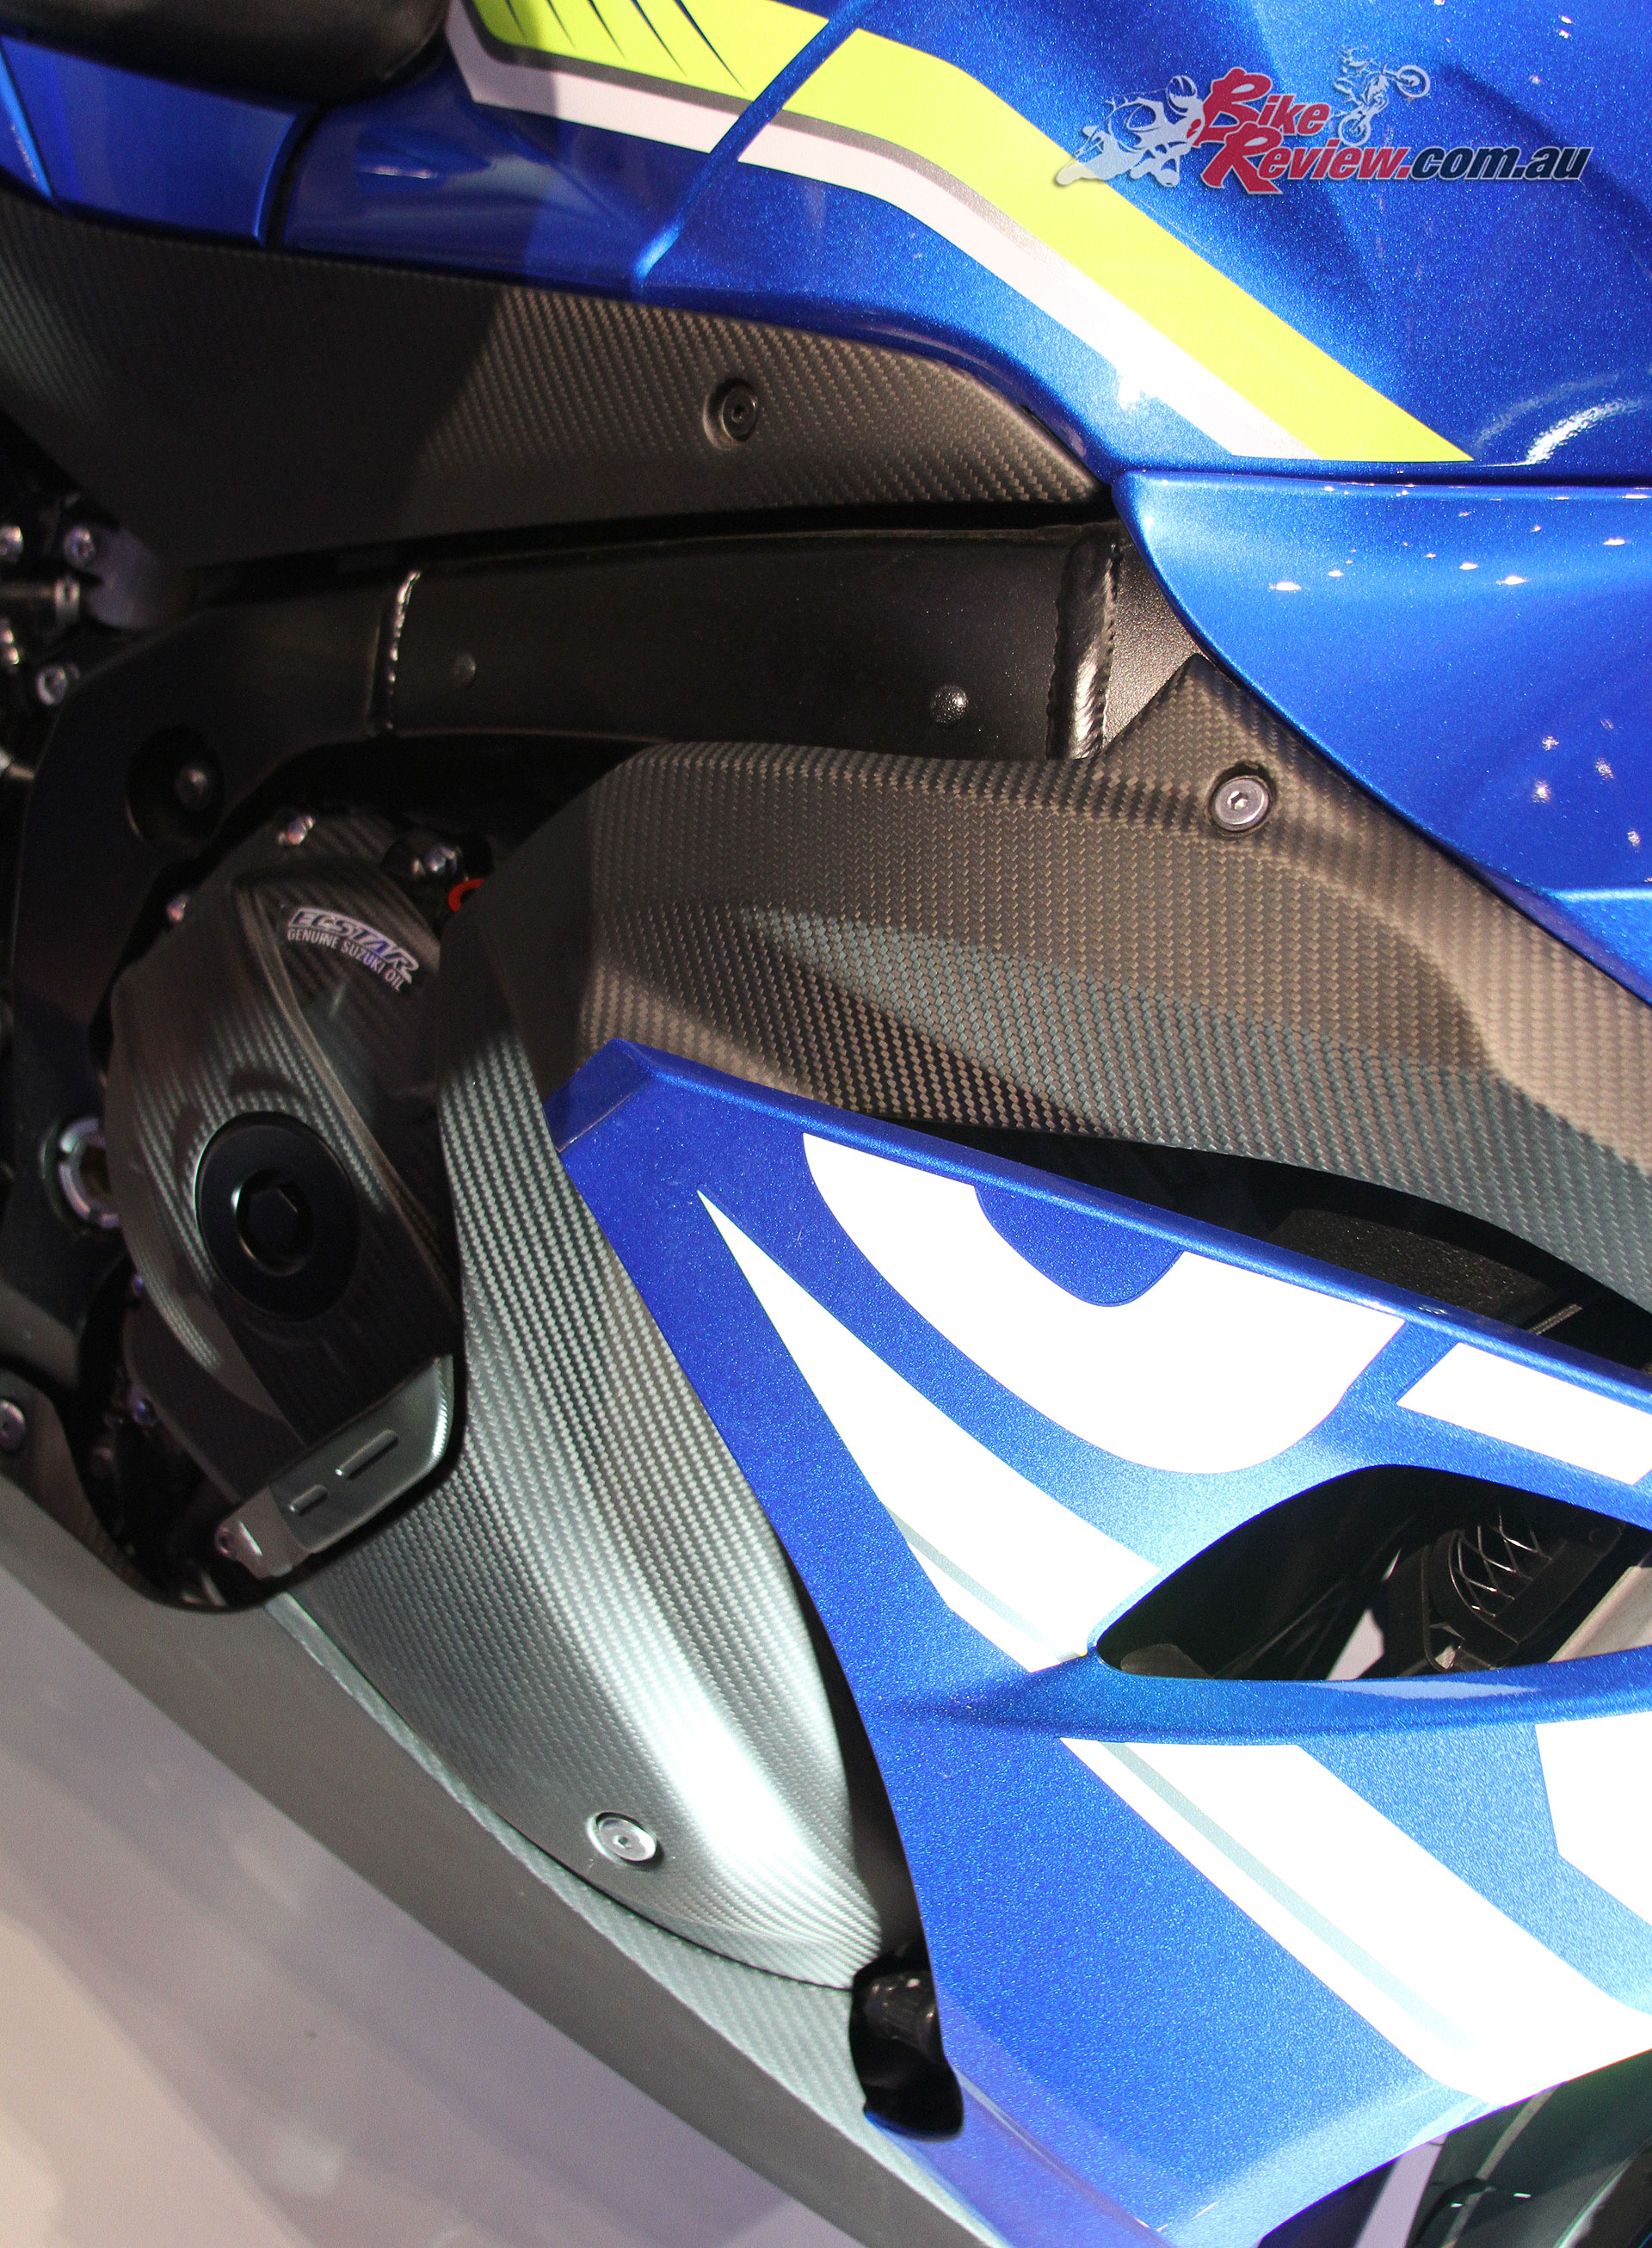 Some awesome carbon-fibre fairings